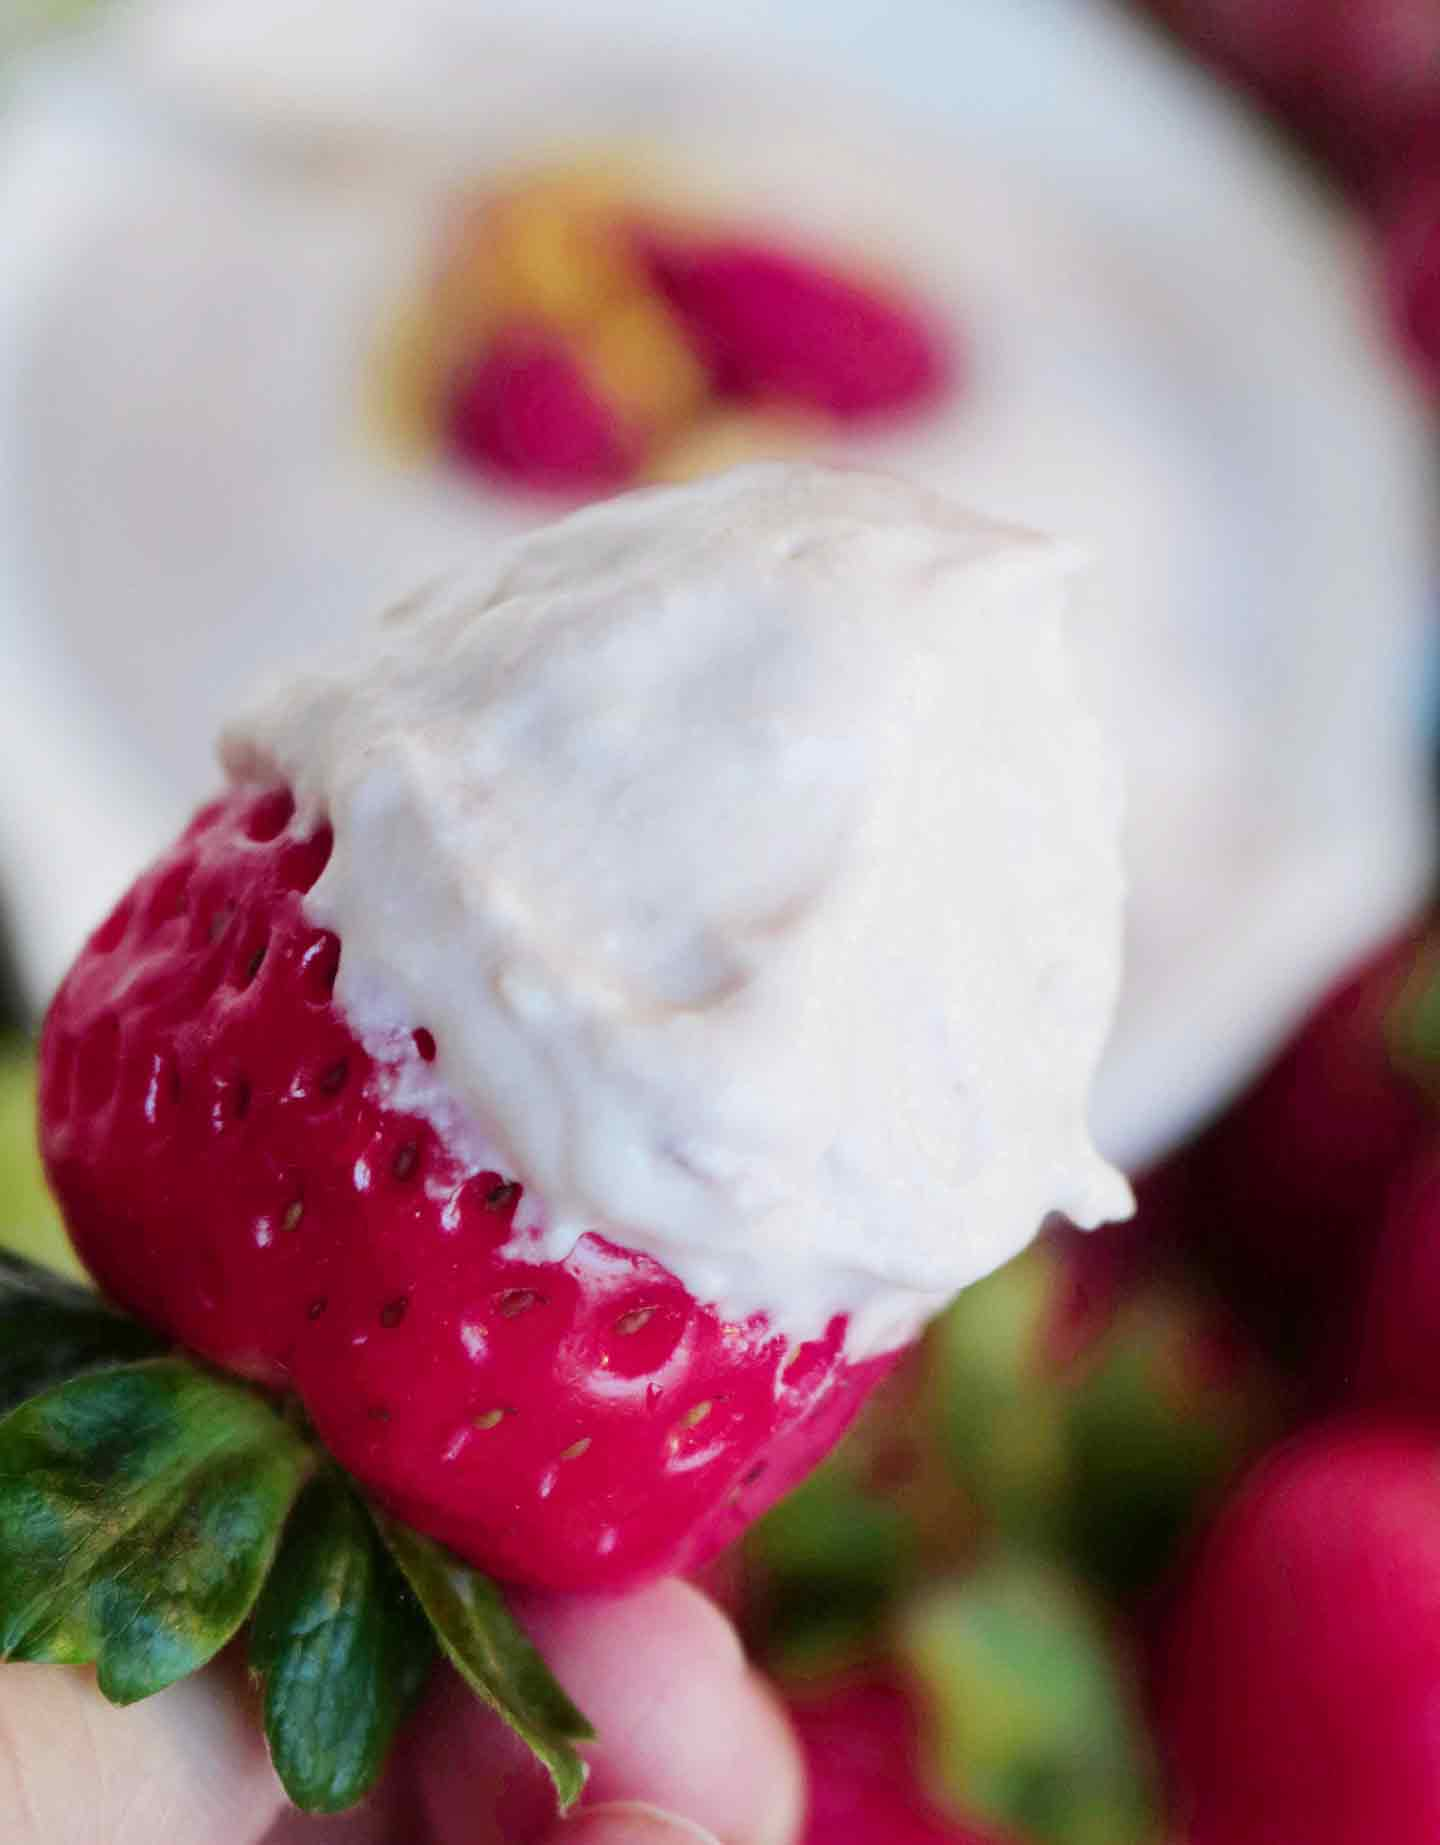 Close up of a strawberry, dipped into Raspberry Yogurt Fruit Dip